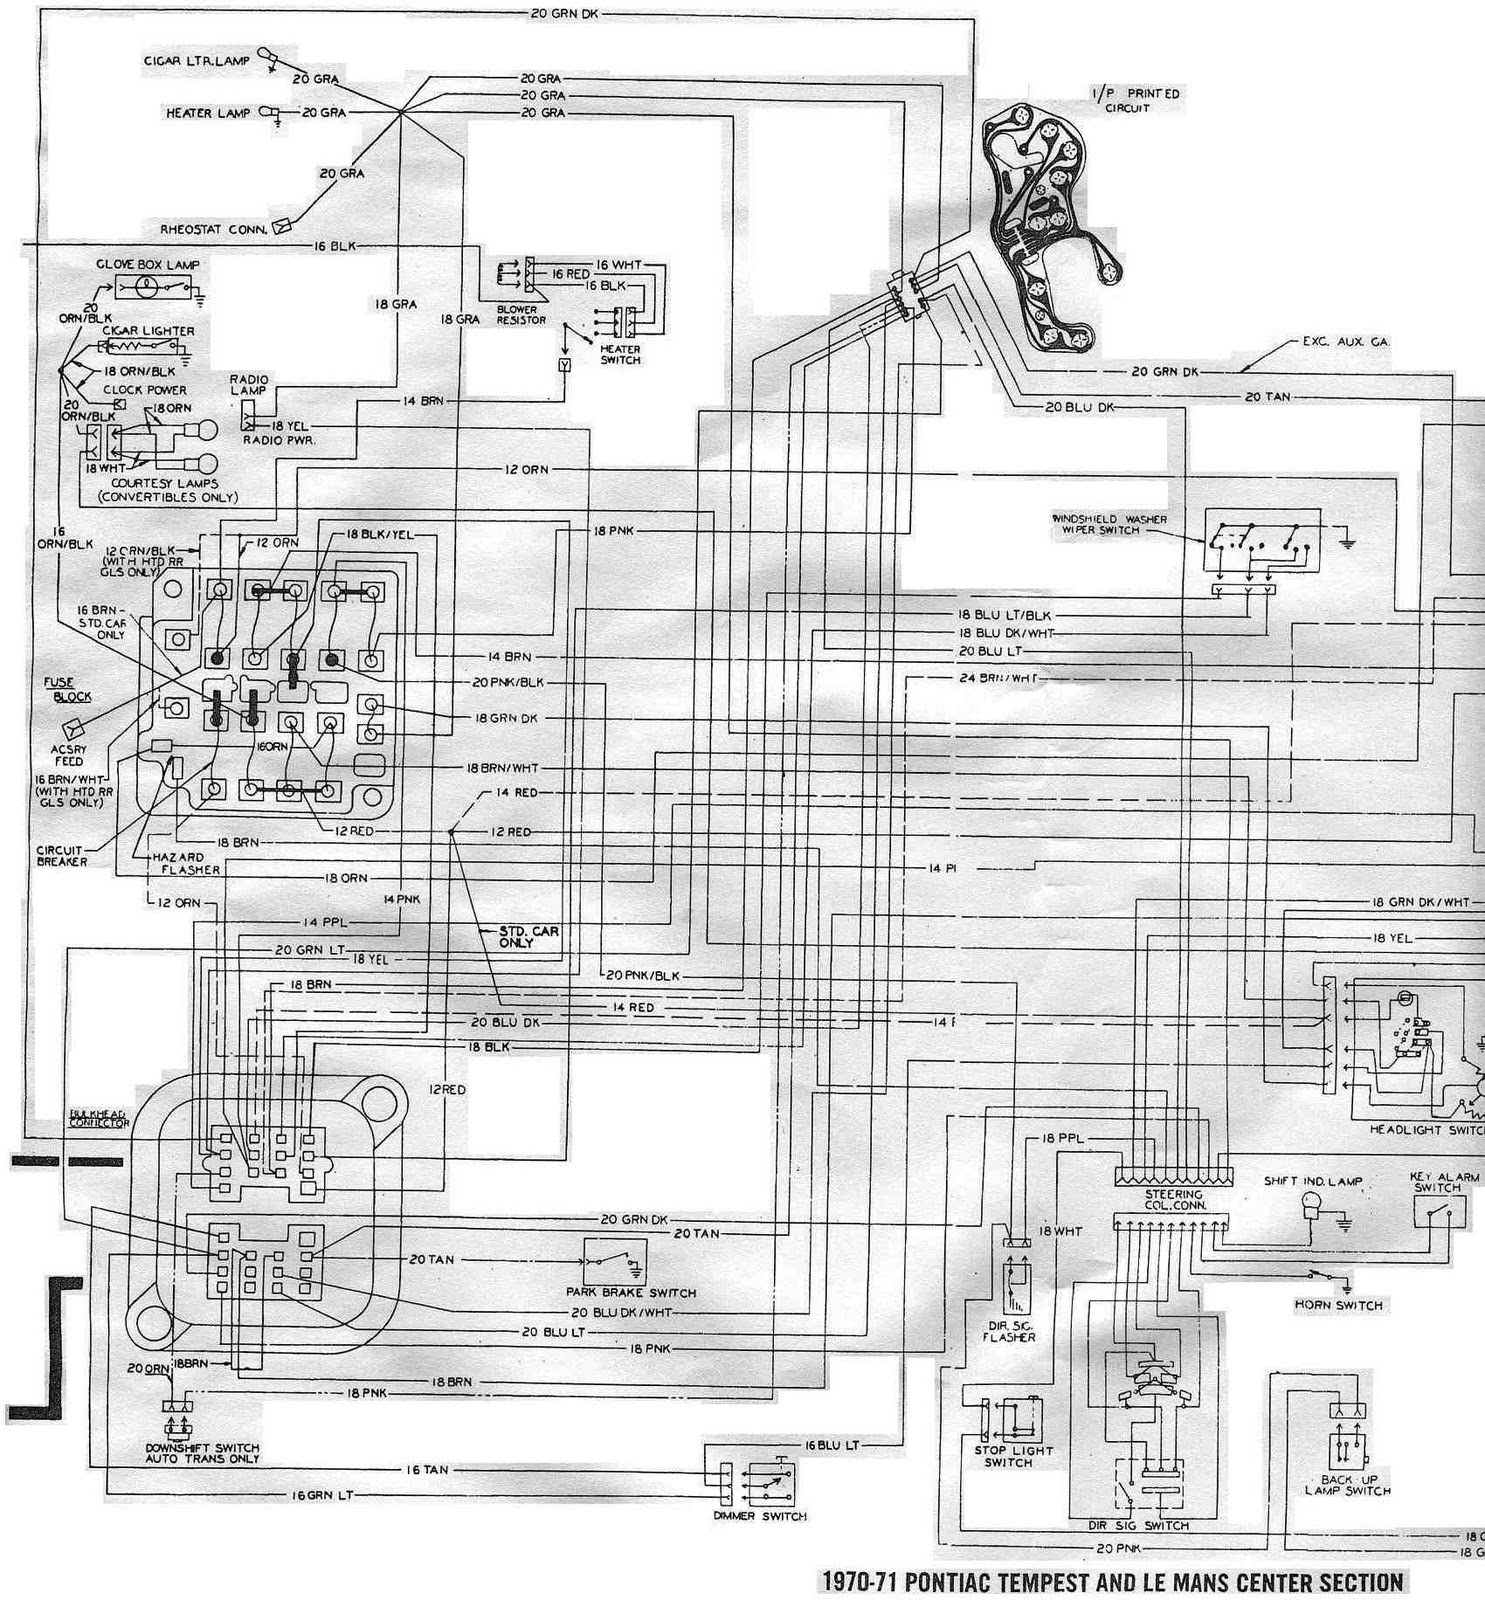 wiring diagram for 1971 pontiac lemans wiring wiring diagrams online 1967 pontiac lemans wiring diagram 1967 wiring diagrams online